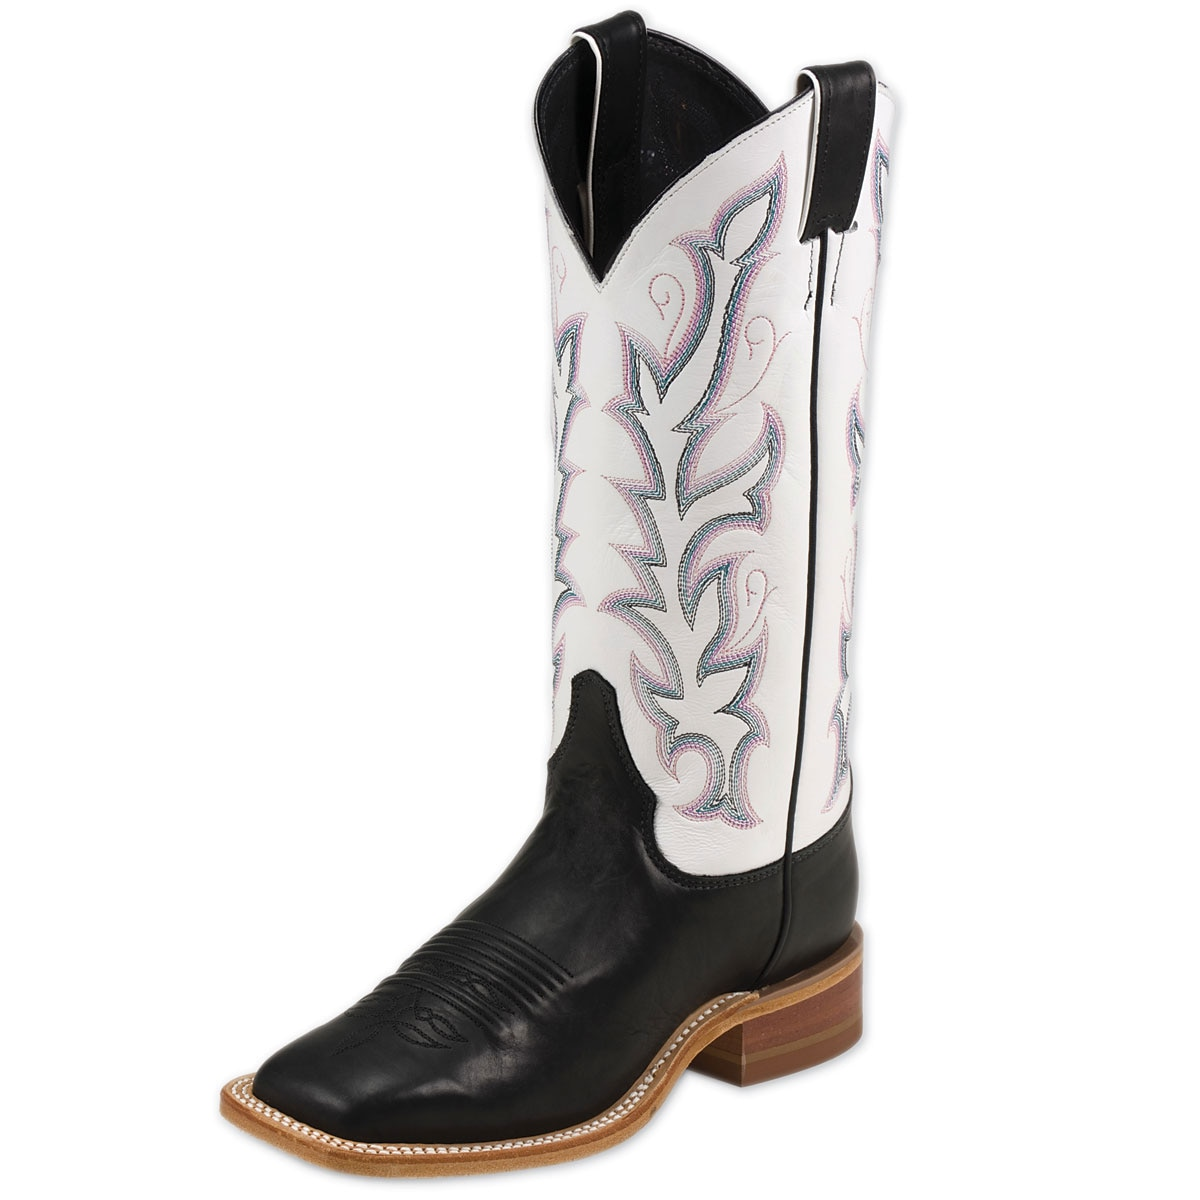 Justin Women's Bent Rail Boots- Albany Black